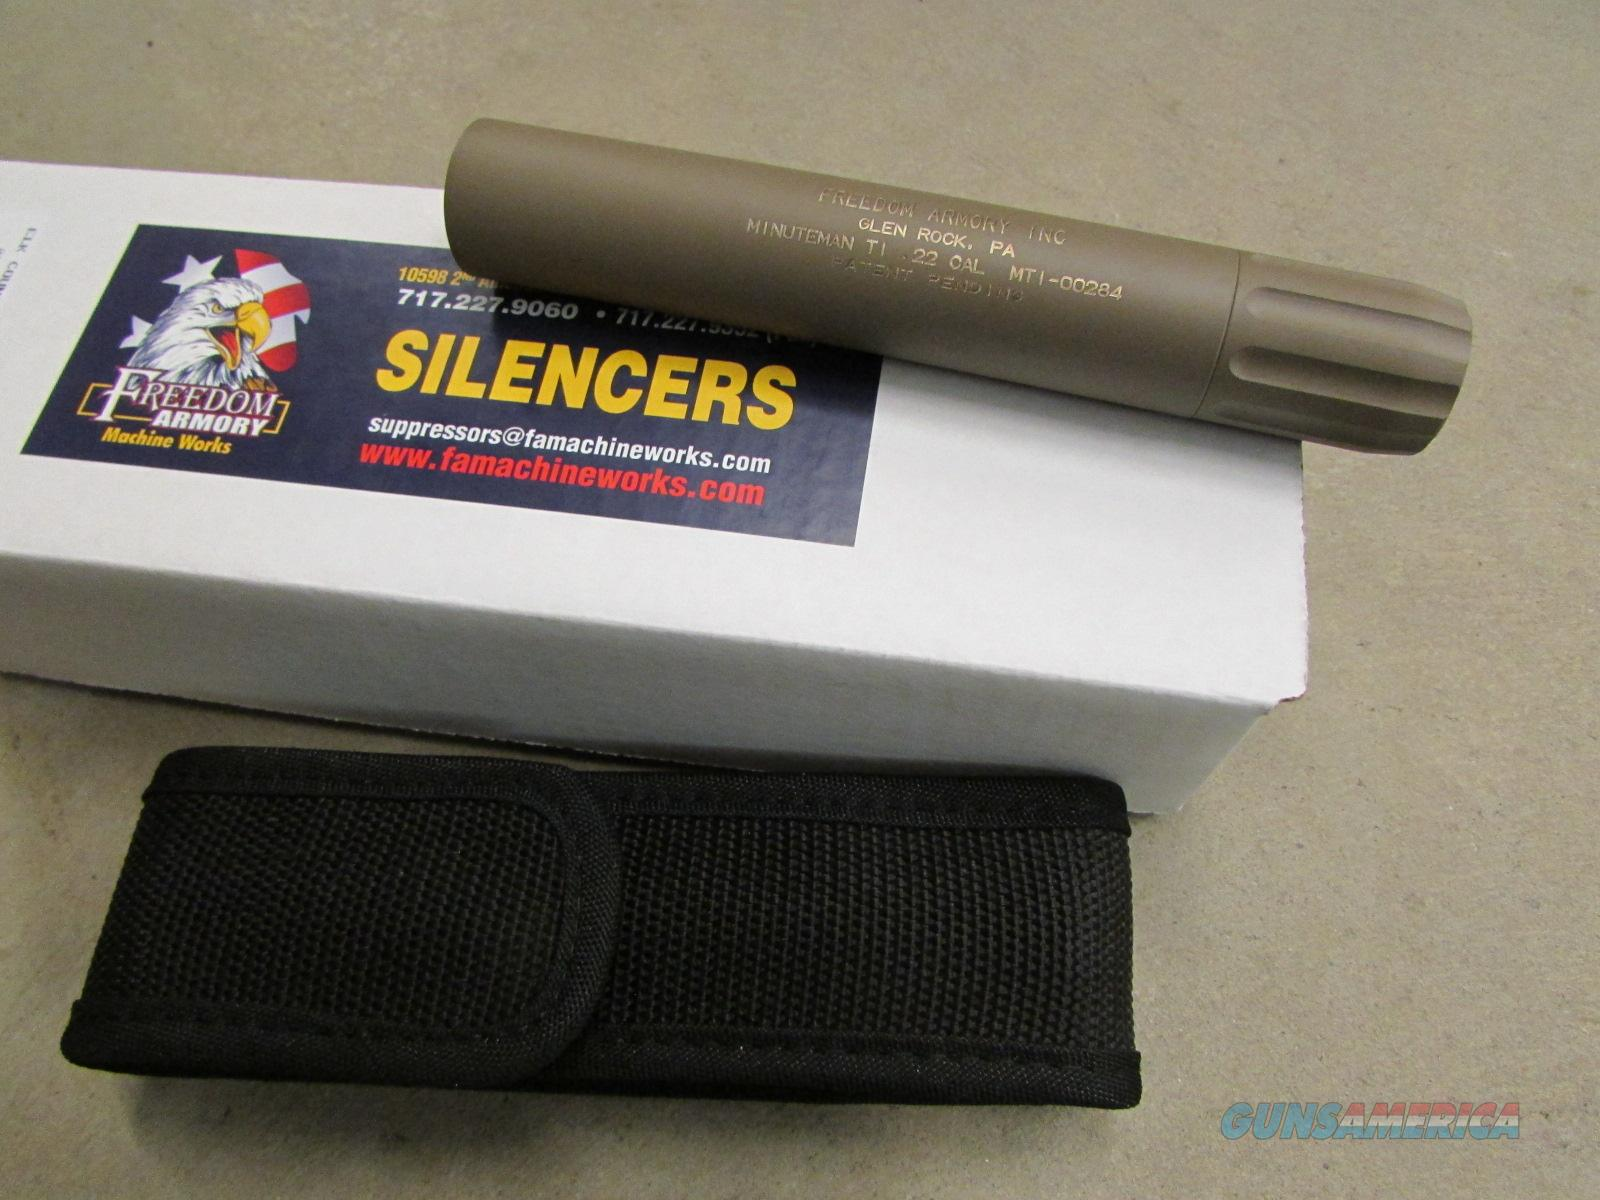 FREEDOM ARMS MACHINE WORKS MINUTEMAN TI .22 CALIBER SILENCER/SUPPRESSOR FDE  Non-Guns > Barrels